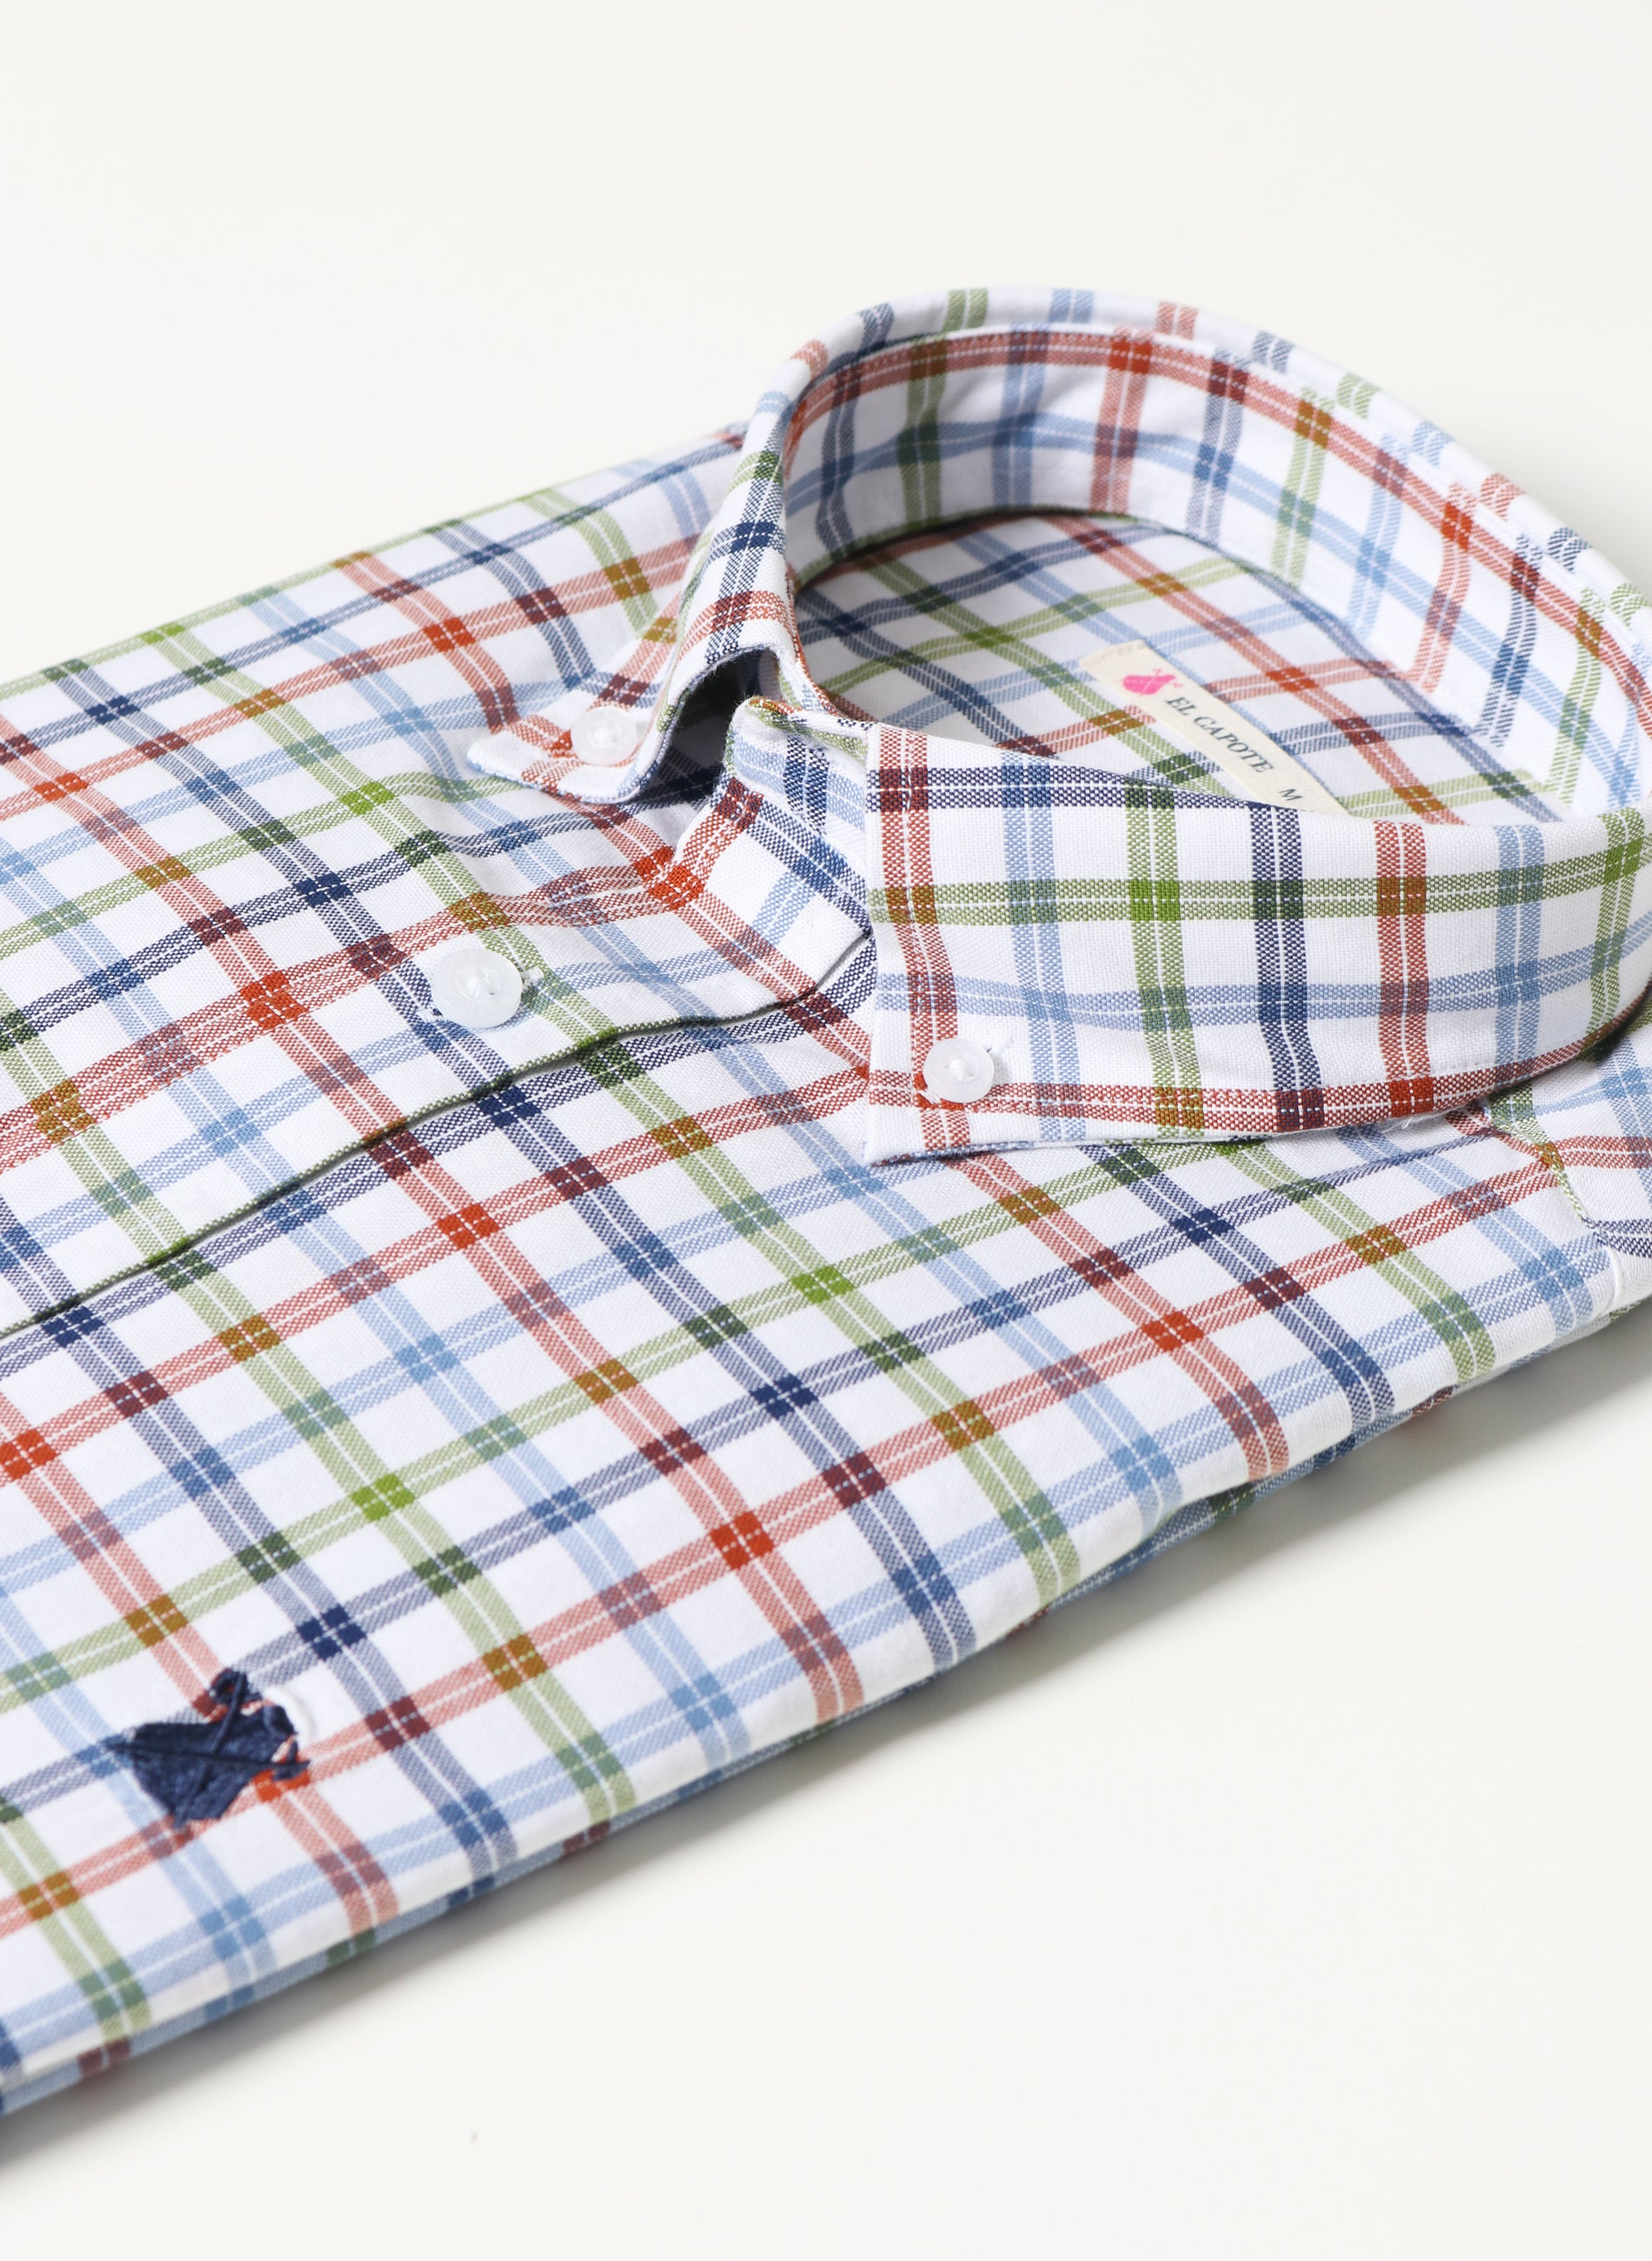 Men's White Shirt Green, Blue and Tile Checkers